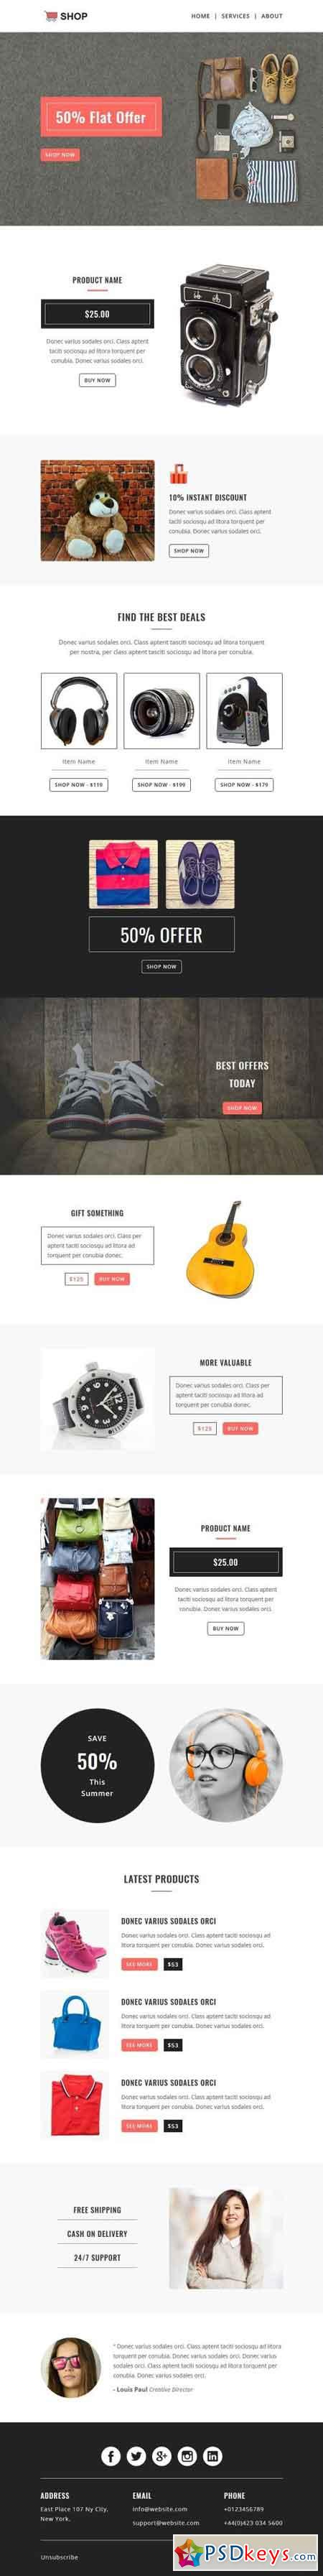 SHOPPING - Responsive Email Template 1590145